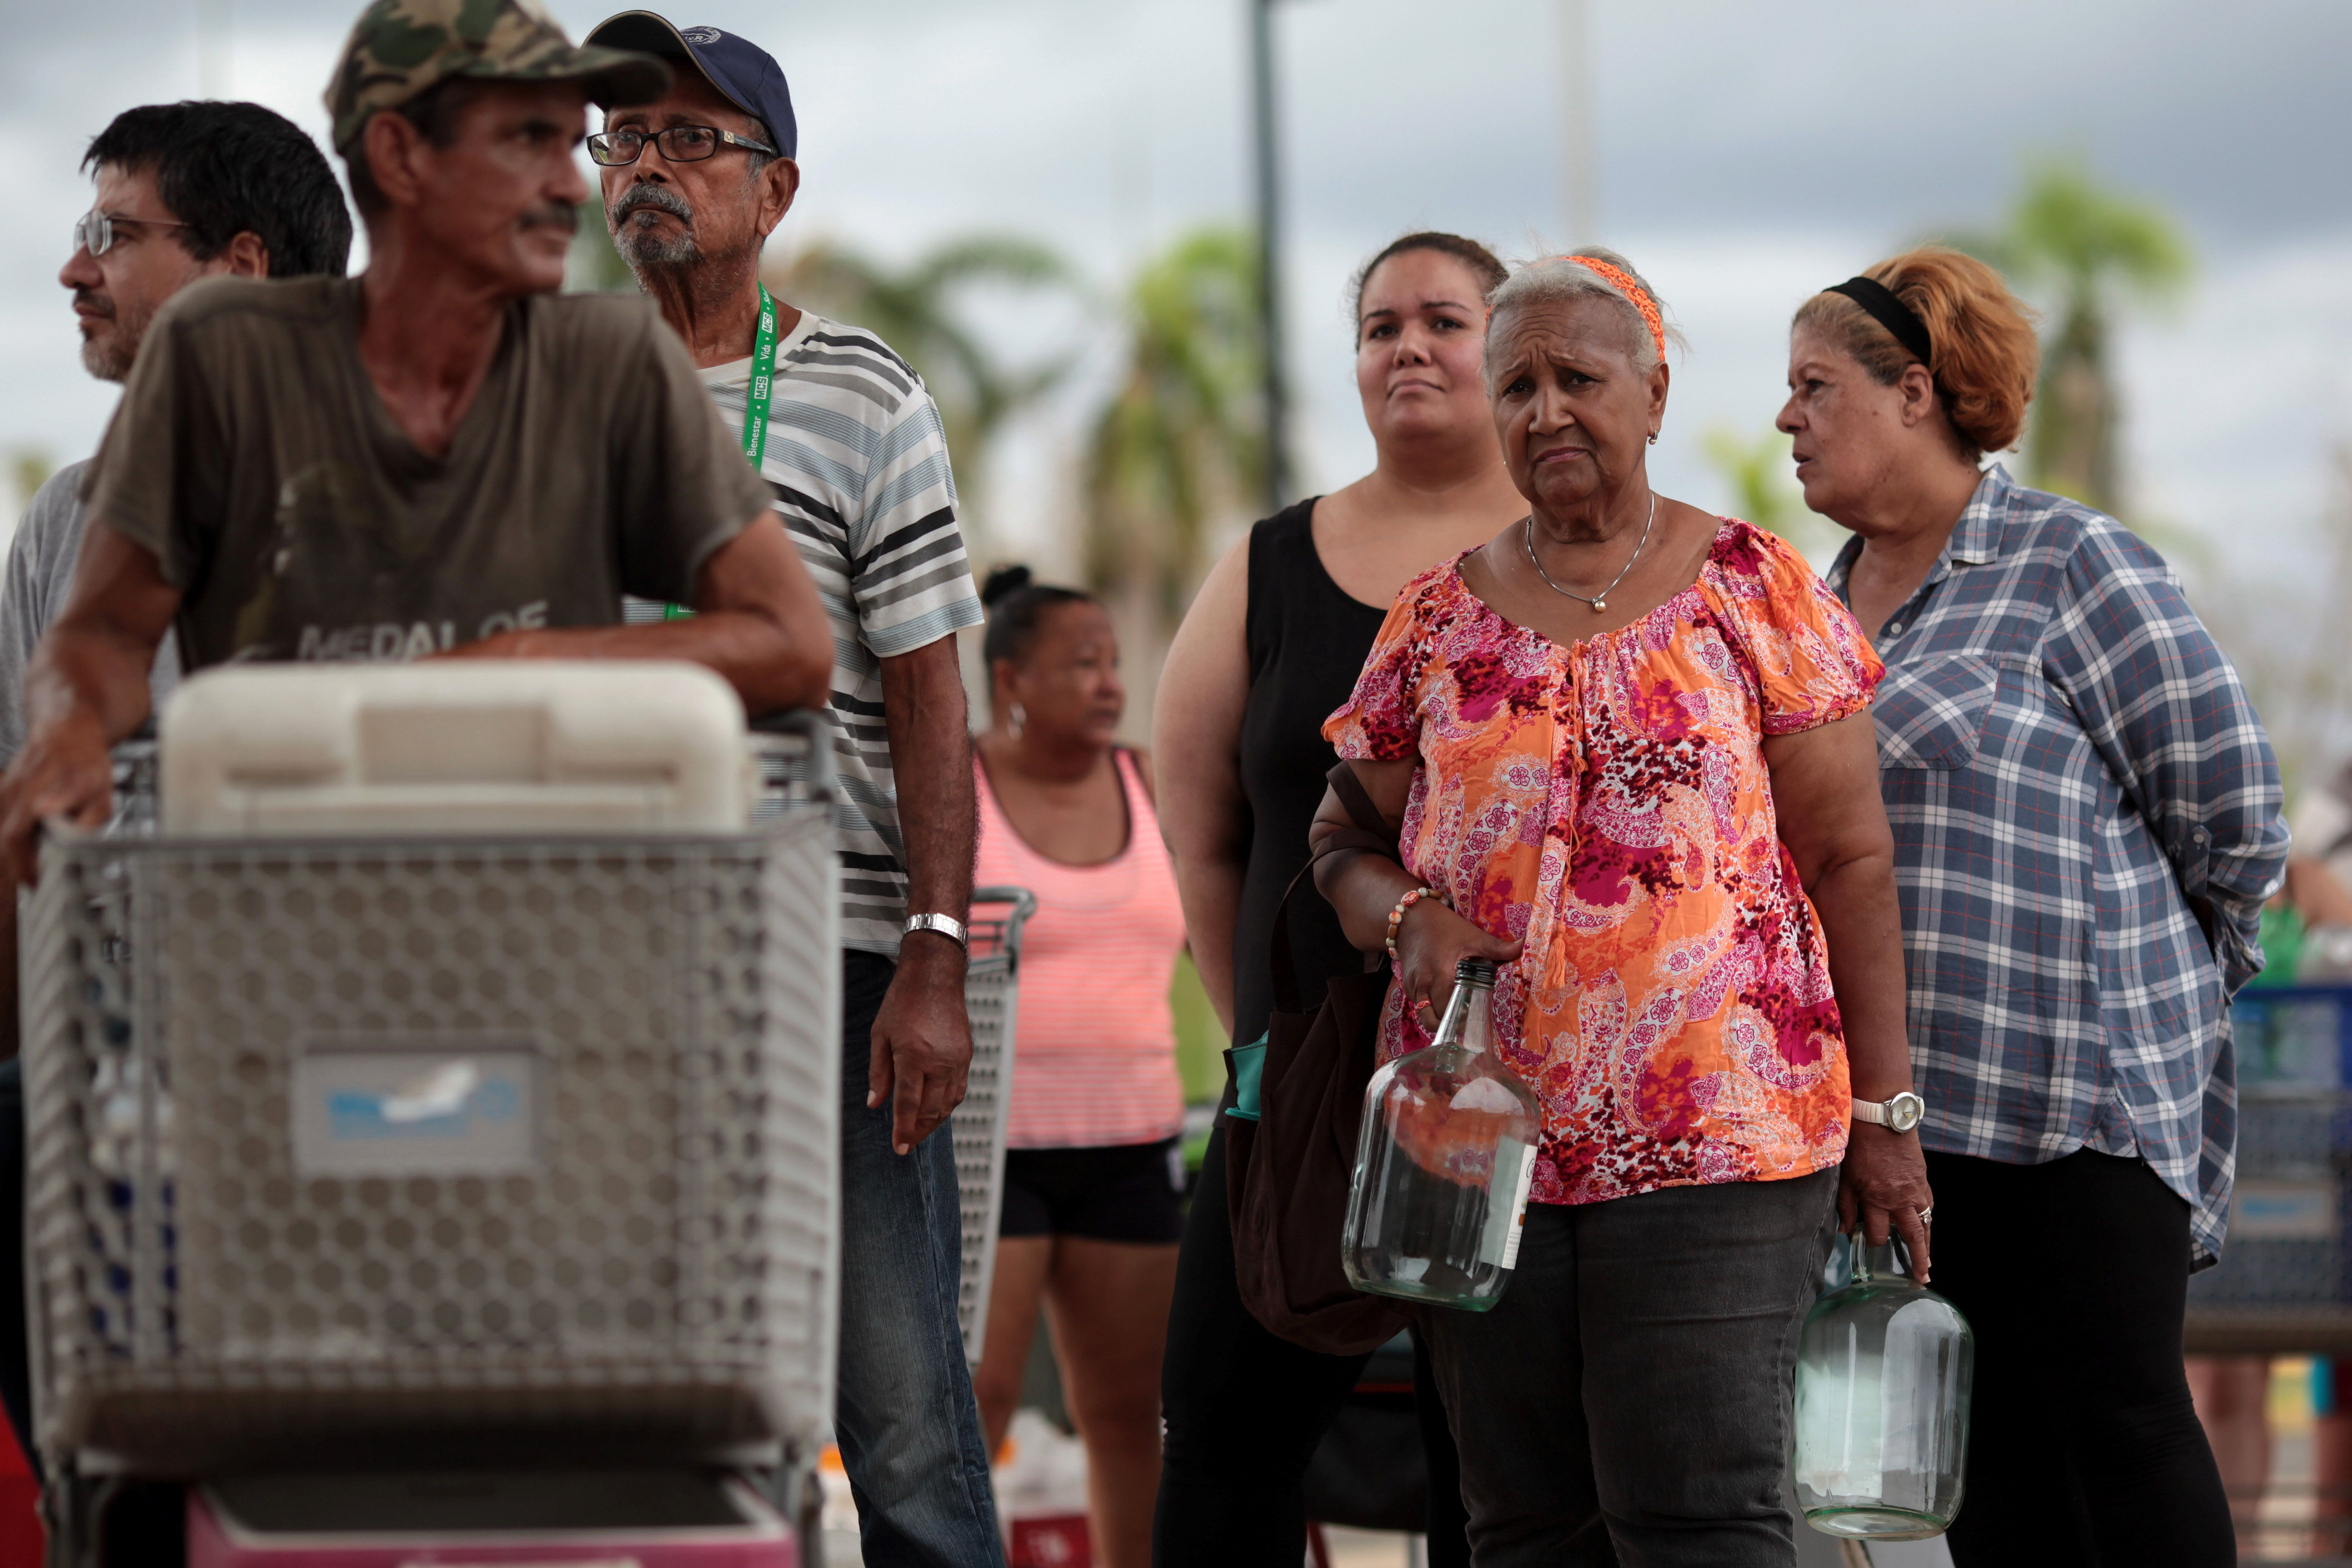 Local residents wait in line during a water distribution in Bayamon following damages caused by Hurricane Maria in Carolina, Puerto Rico, September 30, 2017  REUTERS/Alvin Baez